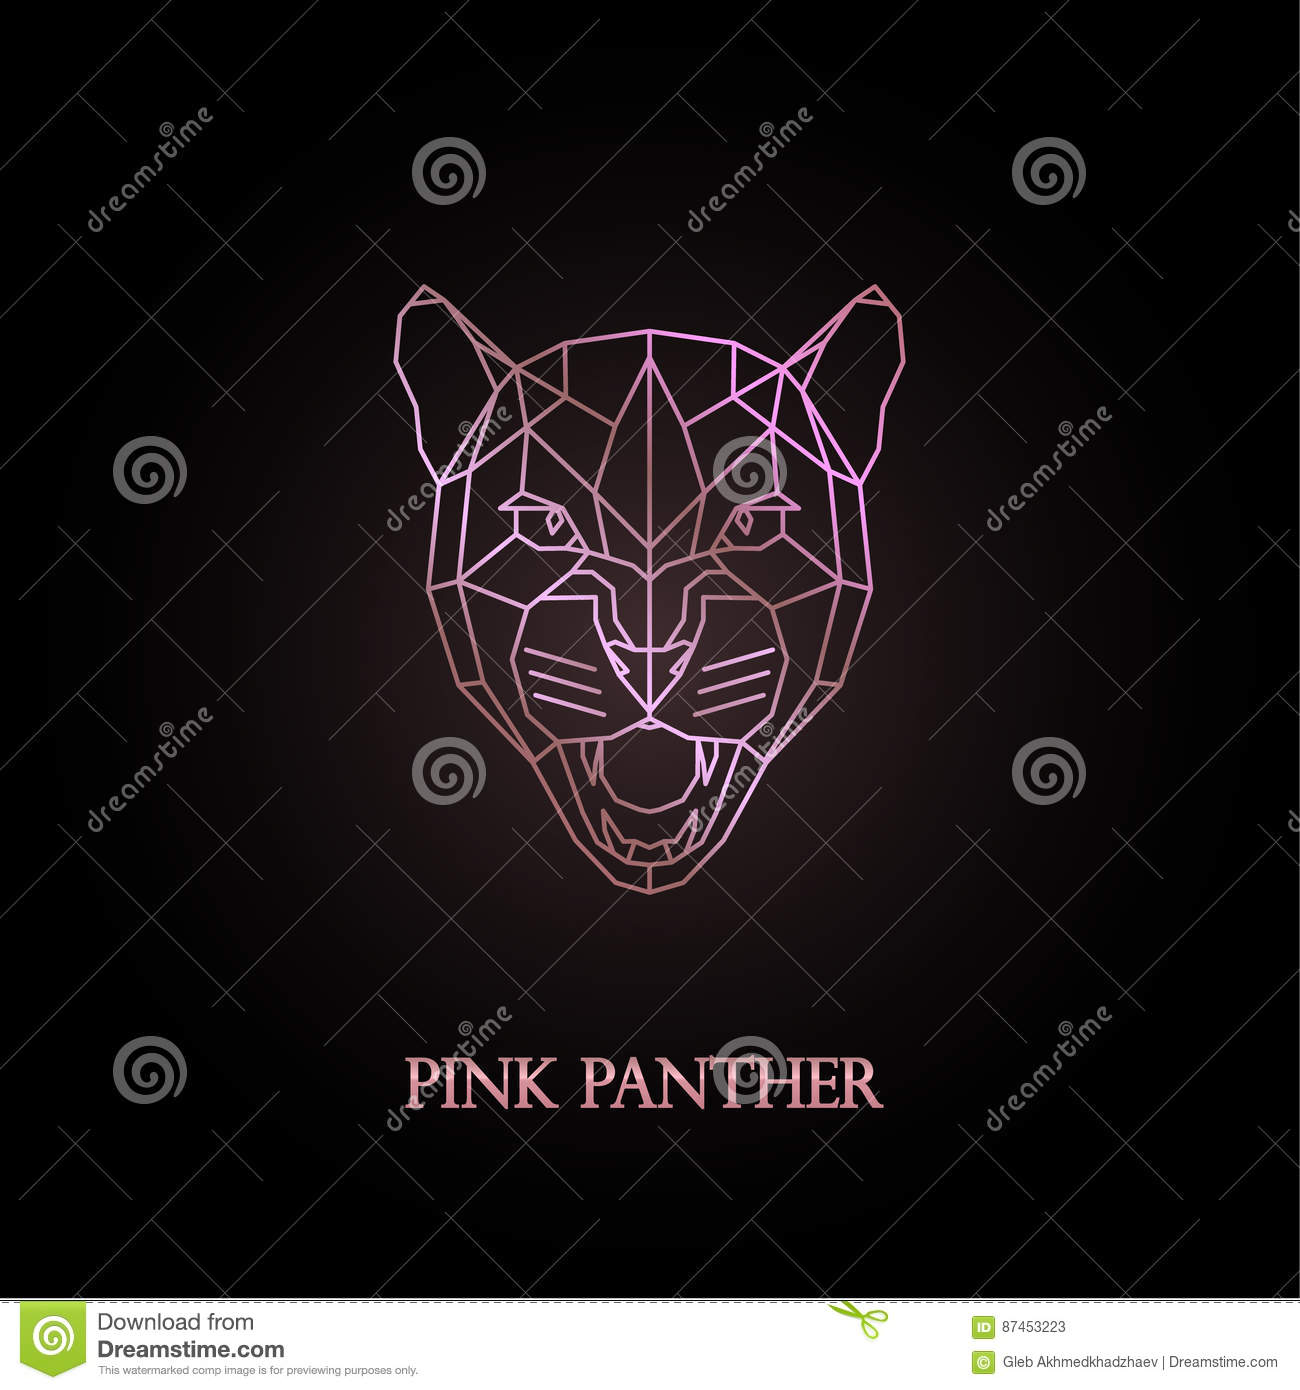 6 Pink Panther Wallpaper HD6 600x338 Source Logo Design Stock Vector Illustration Of Isolated